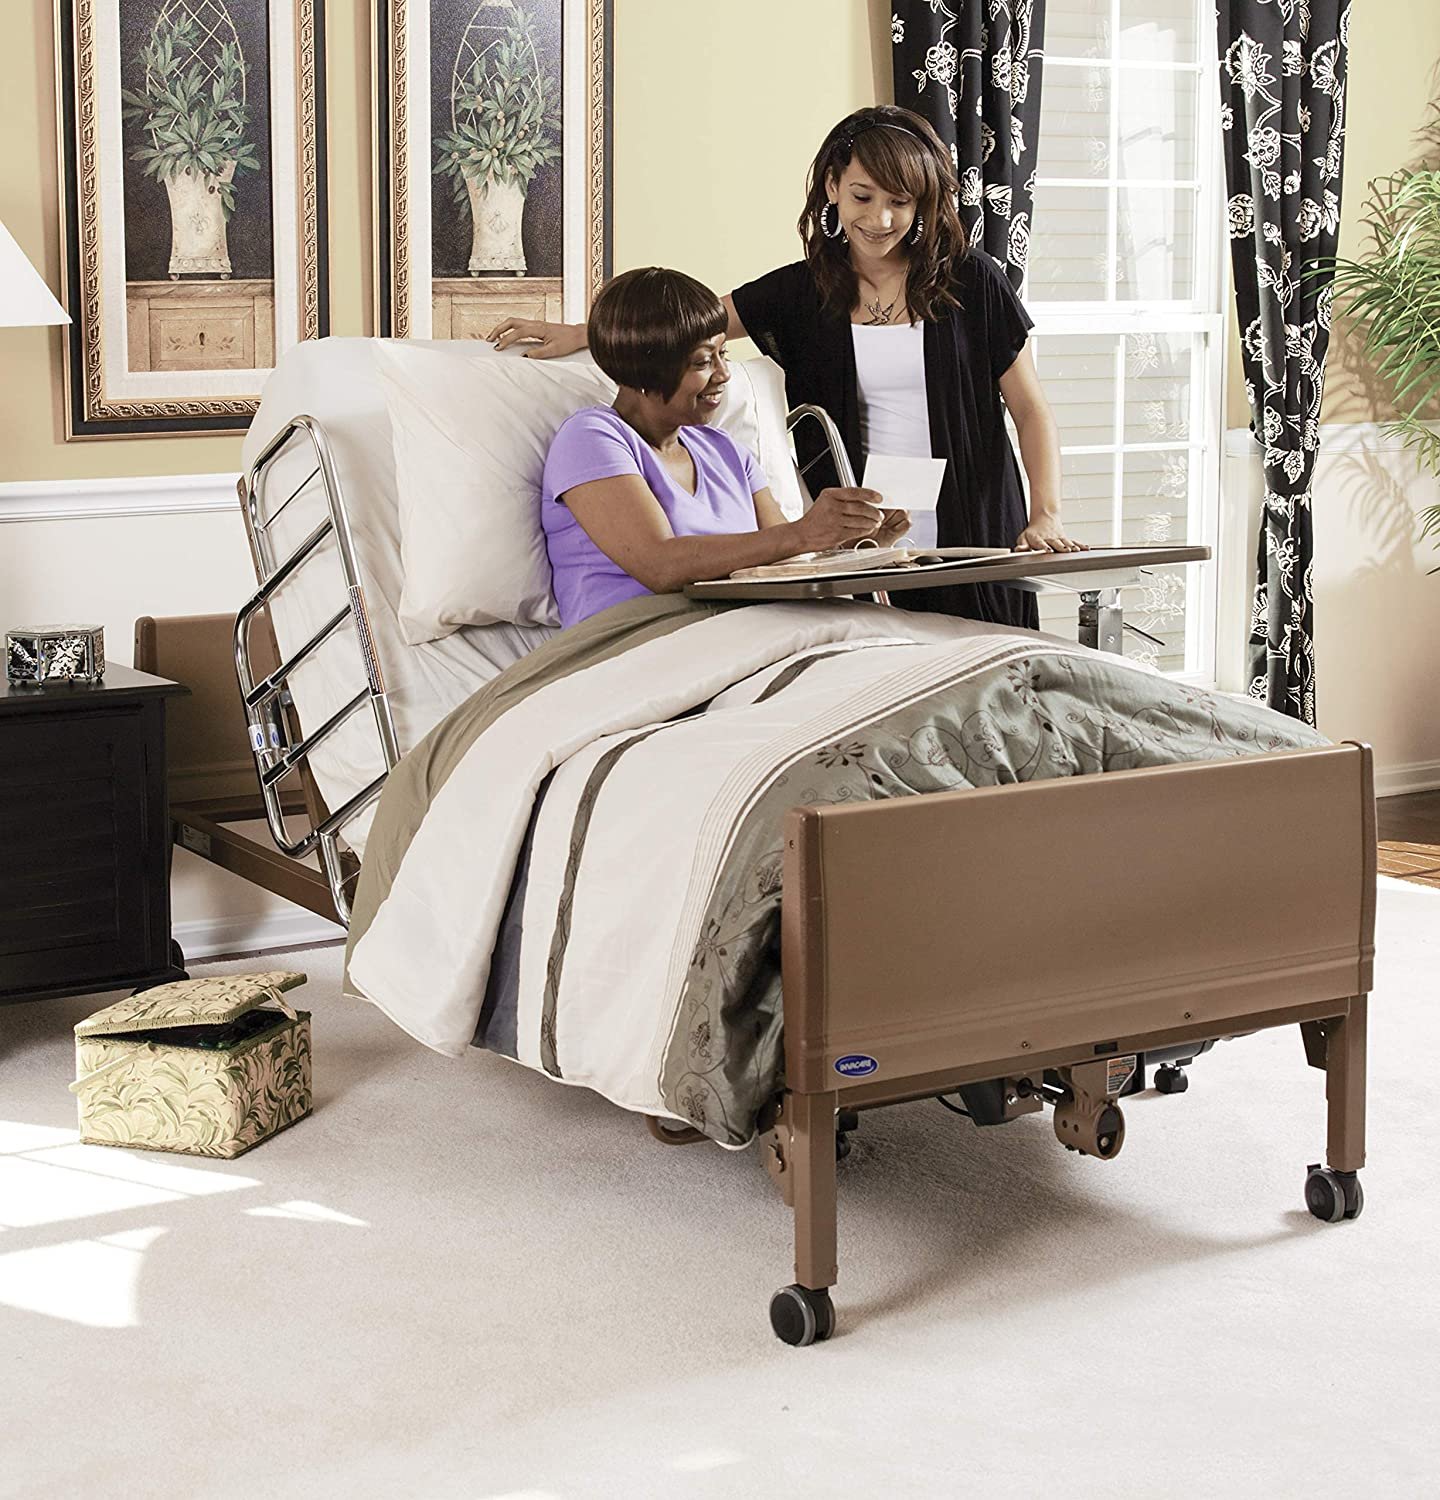 Invacare Semi Electric Homecare Bed with Softform Premier Mattress and Half-Length Bed Rails